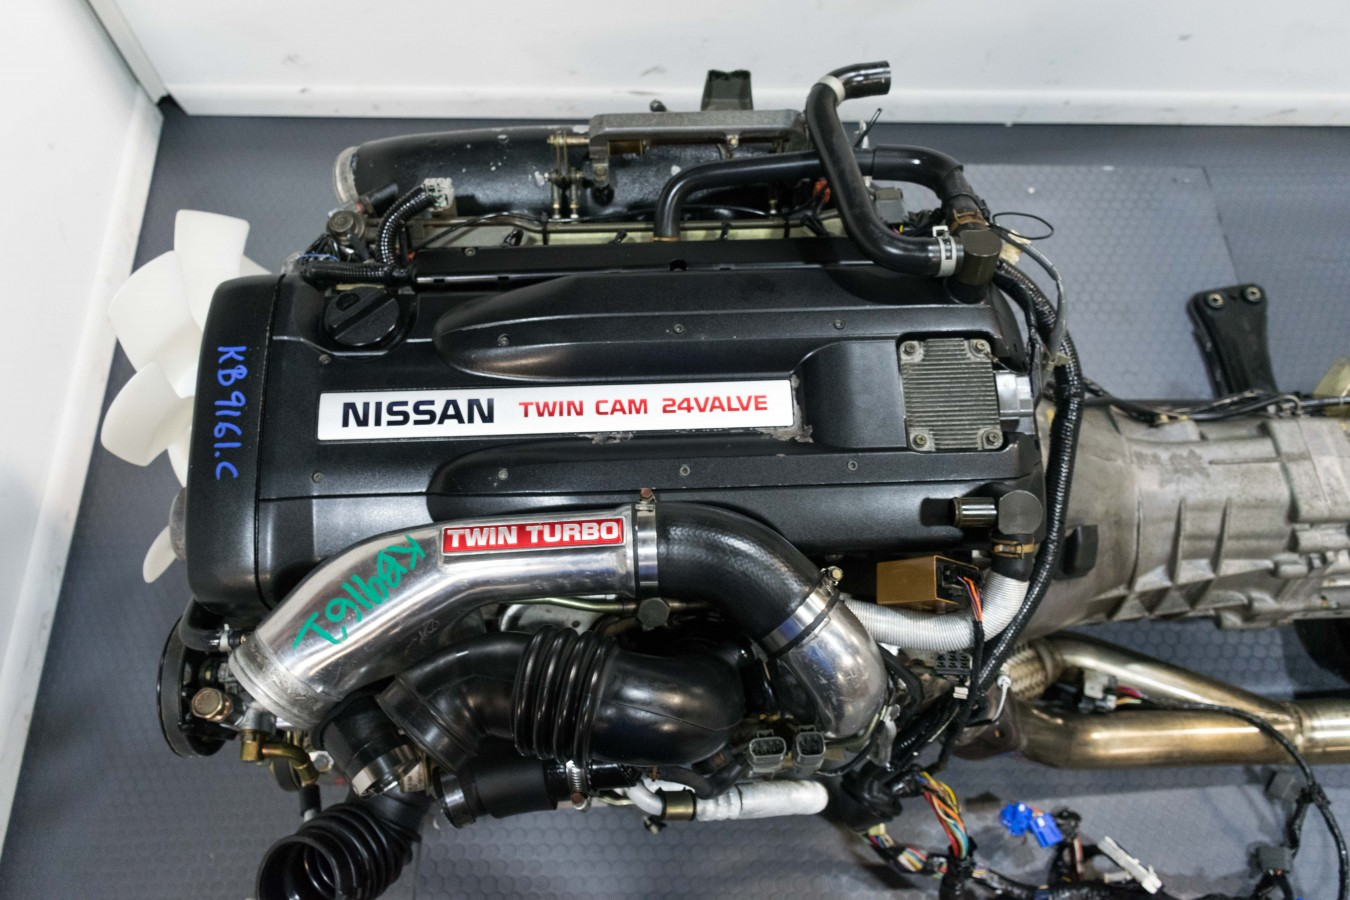 Nissan Skyline R33 Gtr Rb26det Engine With Twin Turbo Harness Ecu Rb26 Wiring